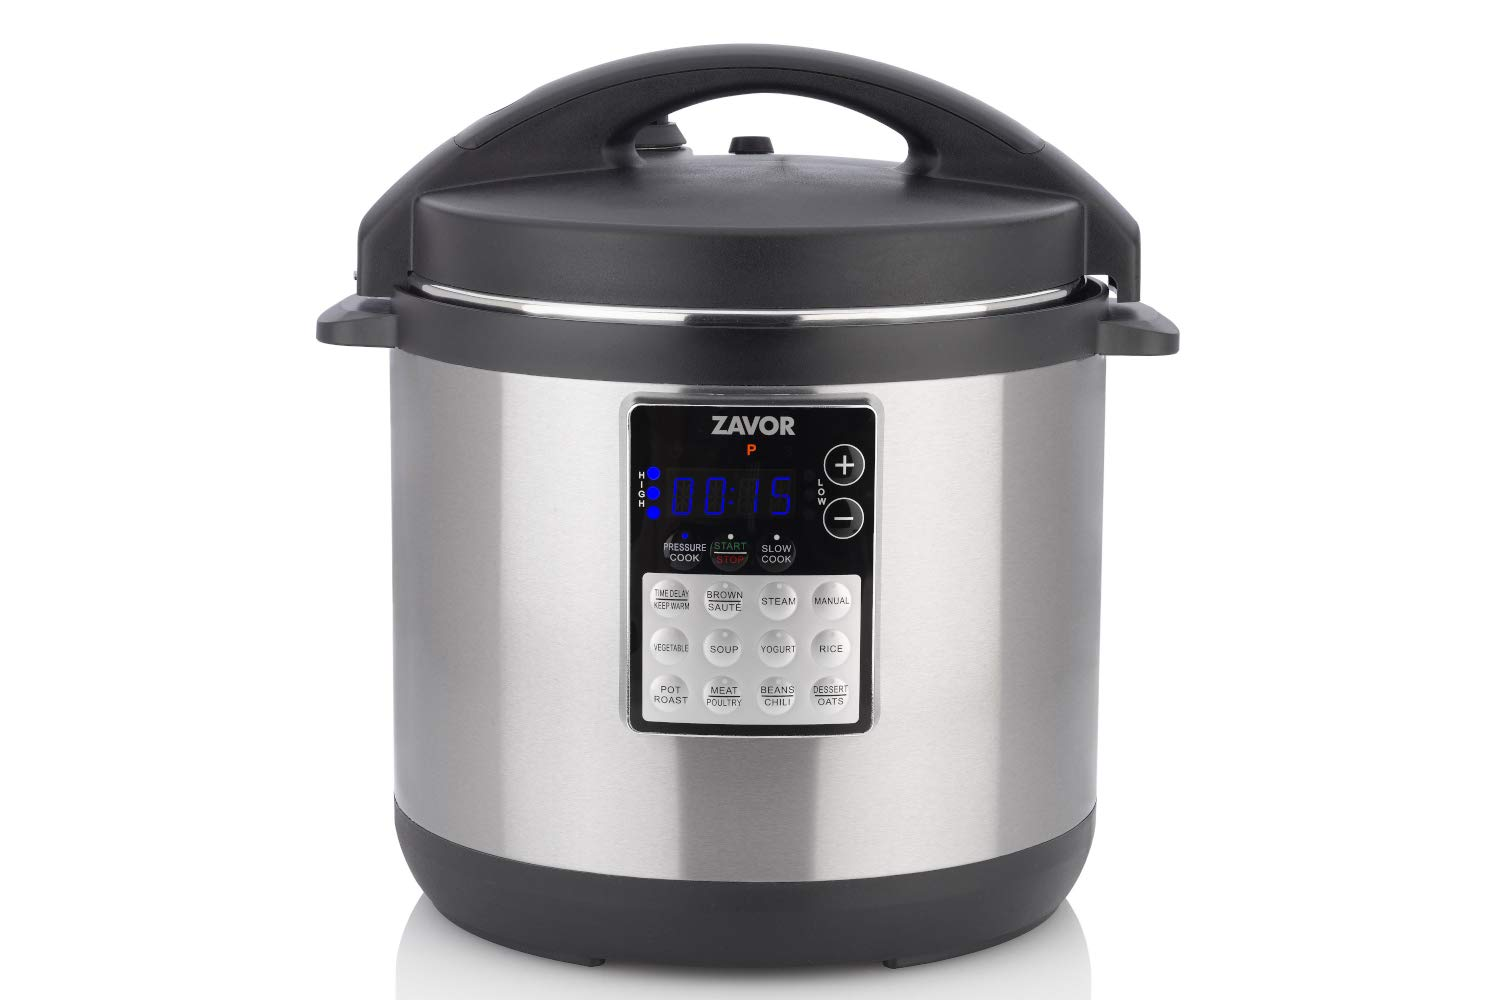 Zavor LUX Edge 6 Quart Programmable Electric Multi-Cooker: Pressure Cooker, Slow Cooker, Rice Cooker, Yogurt Maker, Steamer and more - Stainless Steel (ZSELE02)